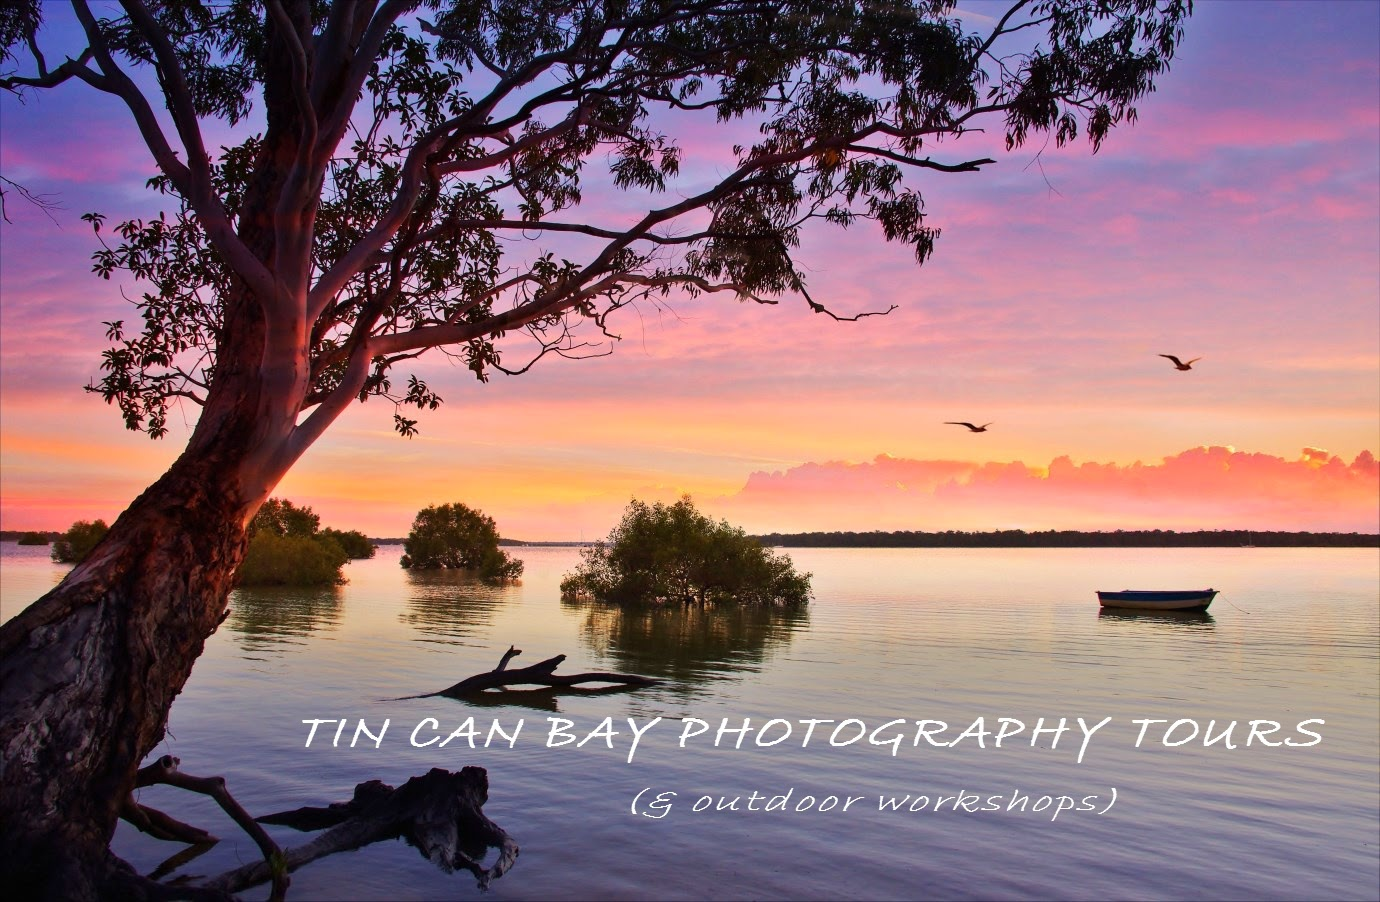 Tin Can Bay Photography Tours